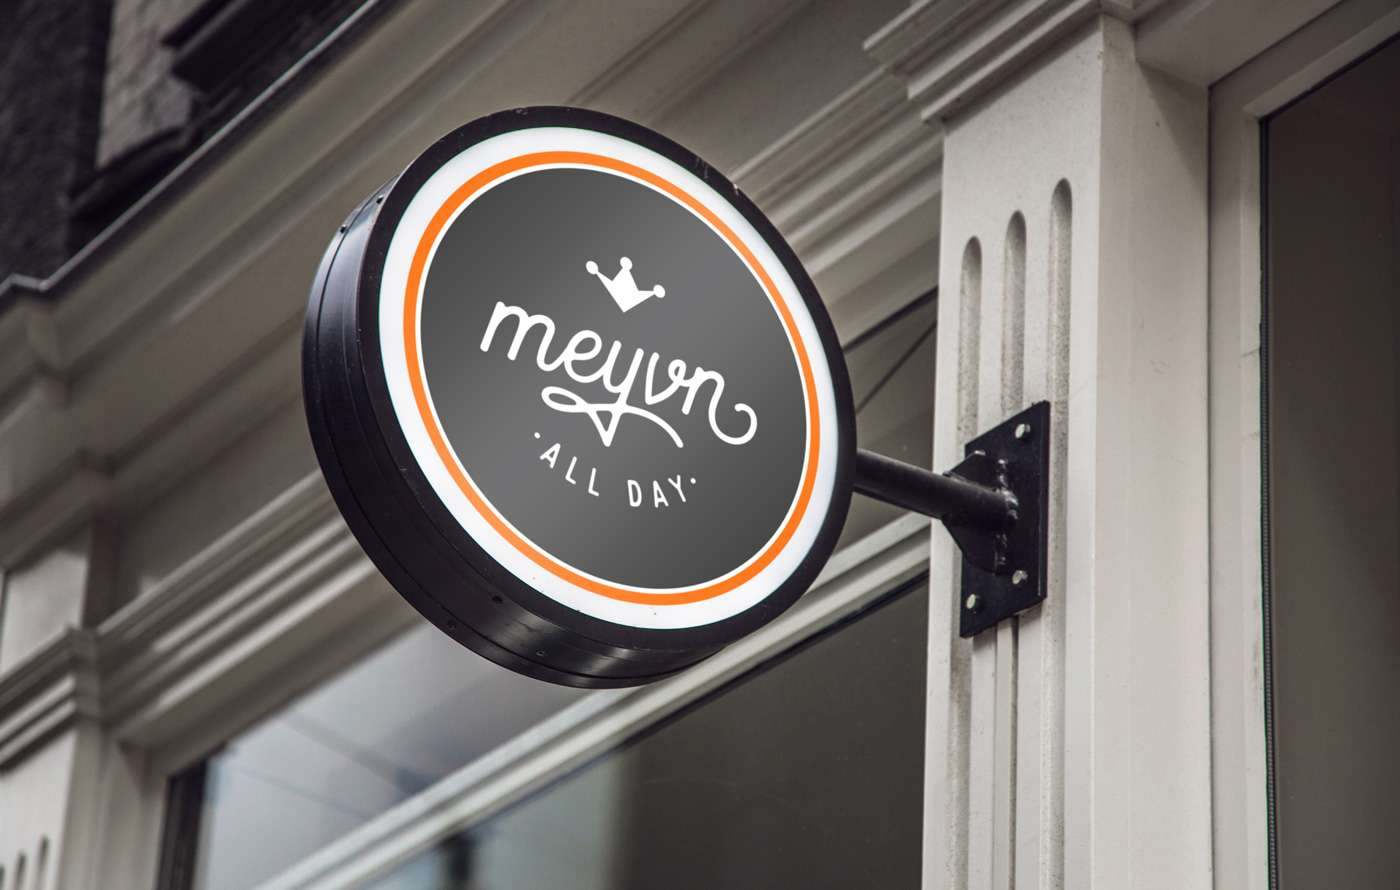 Signage designed for Meyvn restaurant with logo